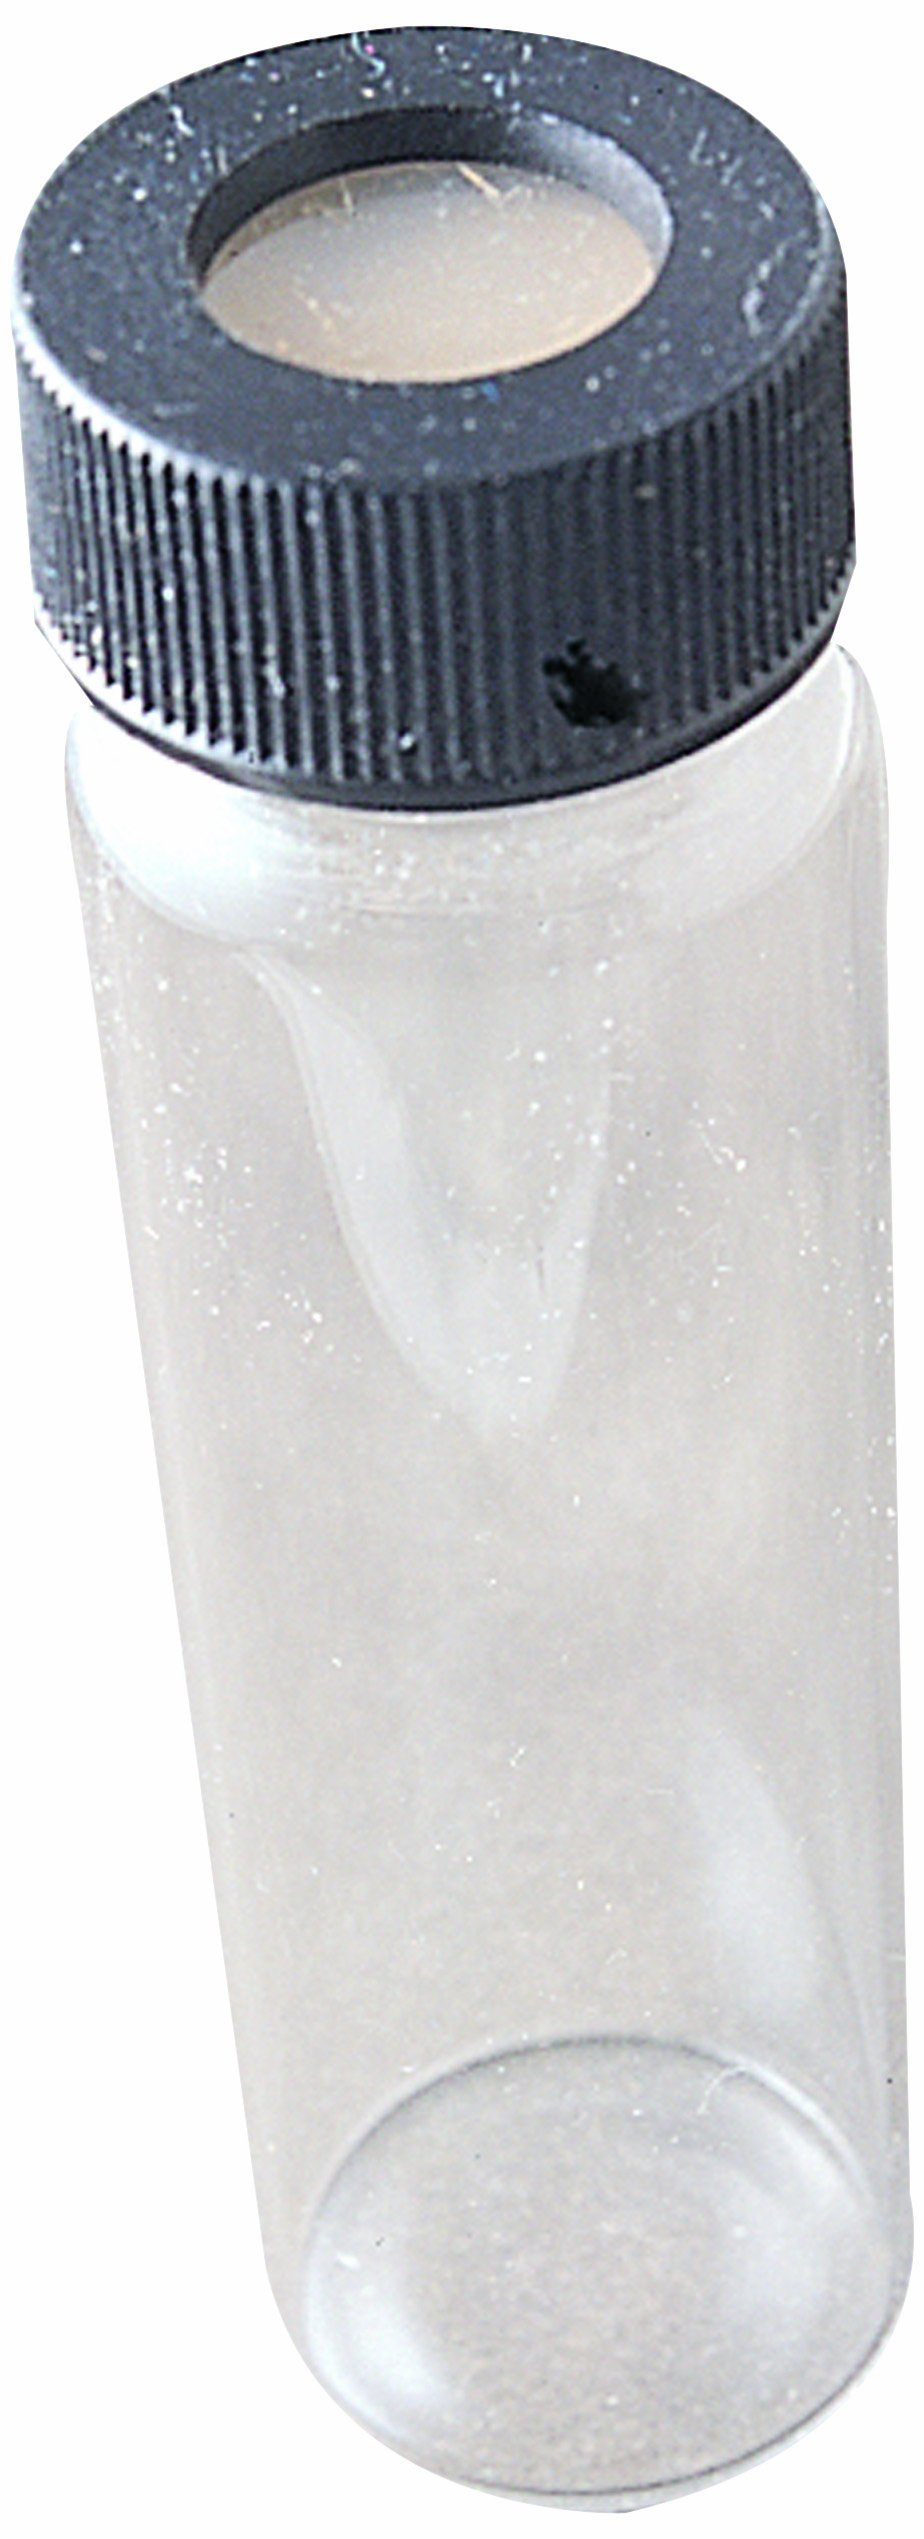 Thomas 91053 Borosilicate Glass 40mL Certified EPA Vial with Autoclavable Cap (Pack of 72)